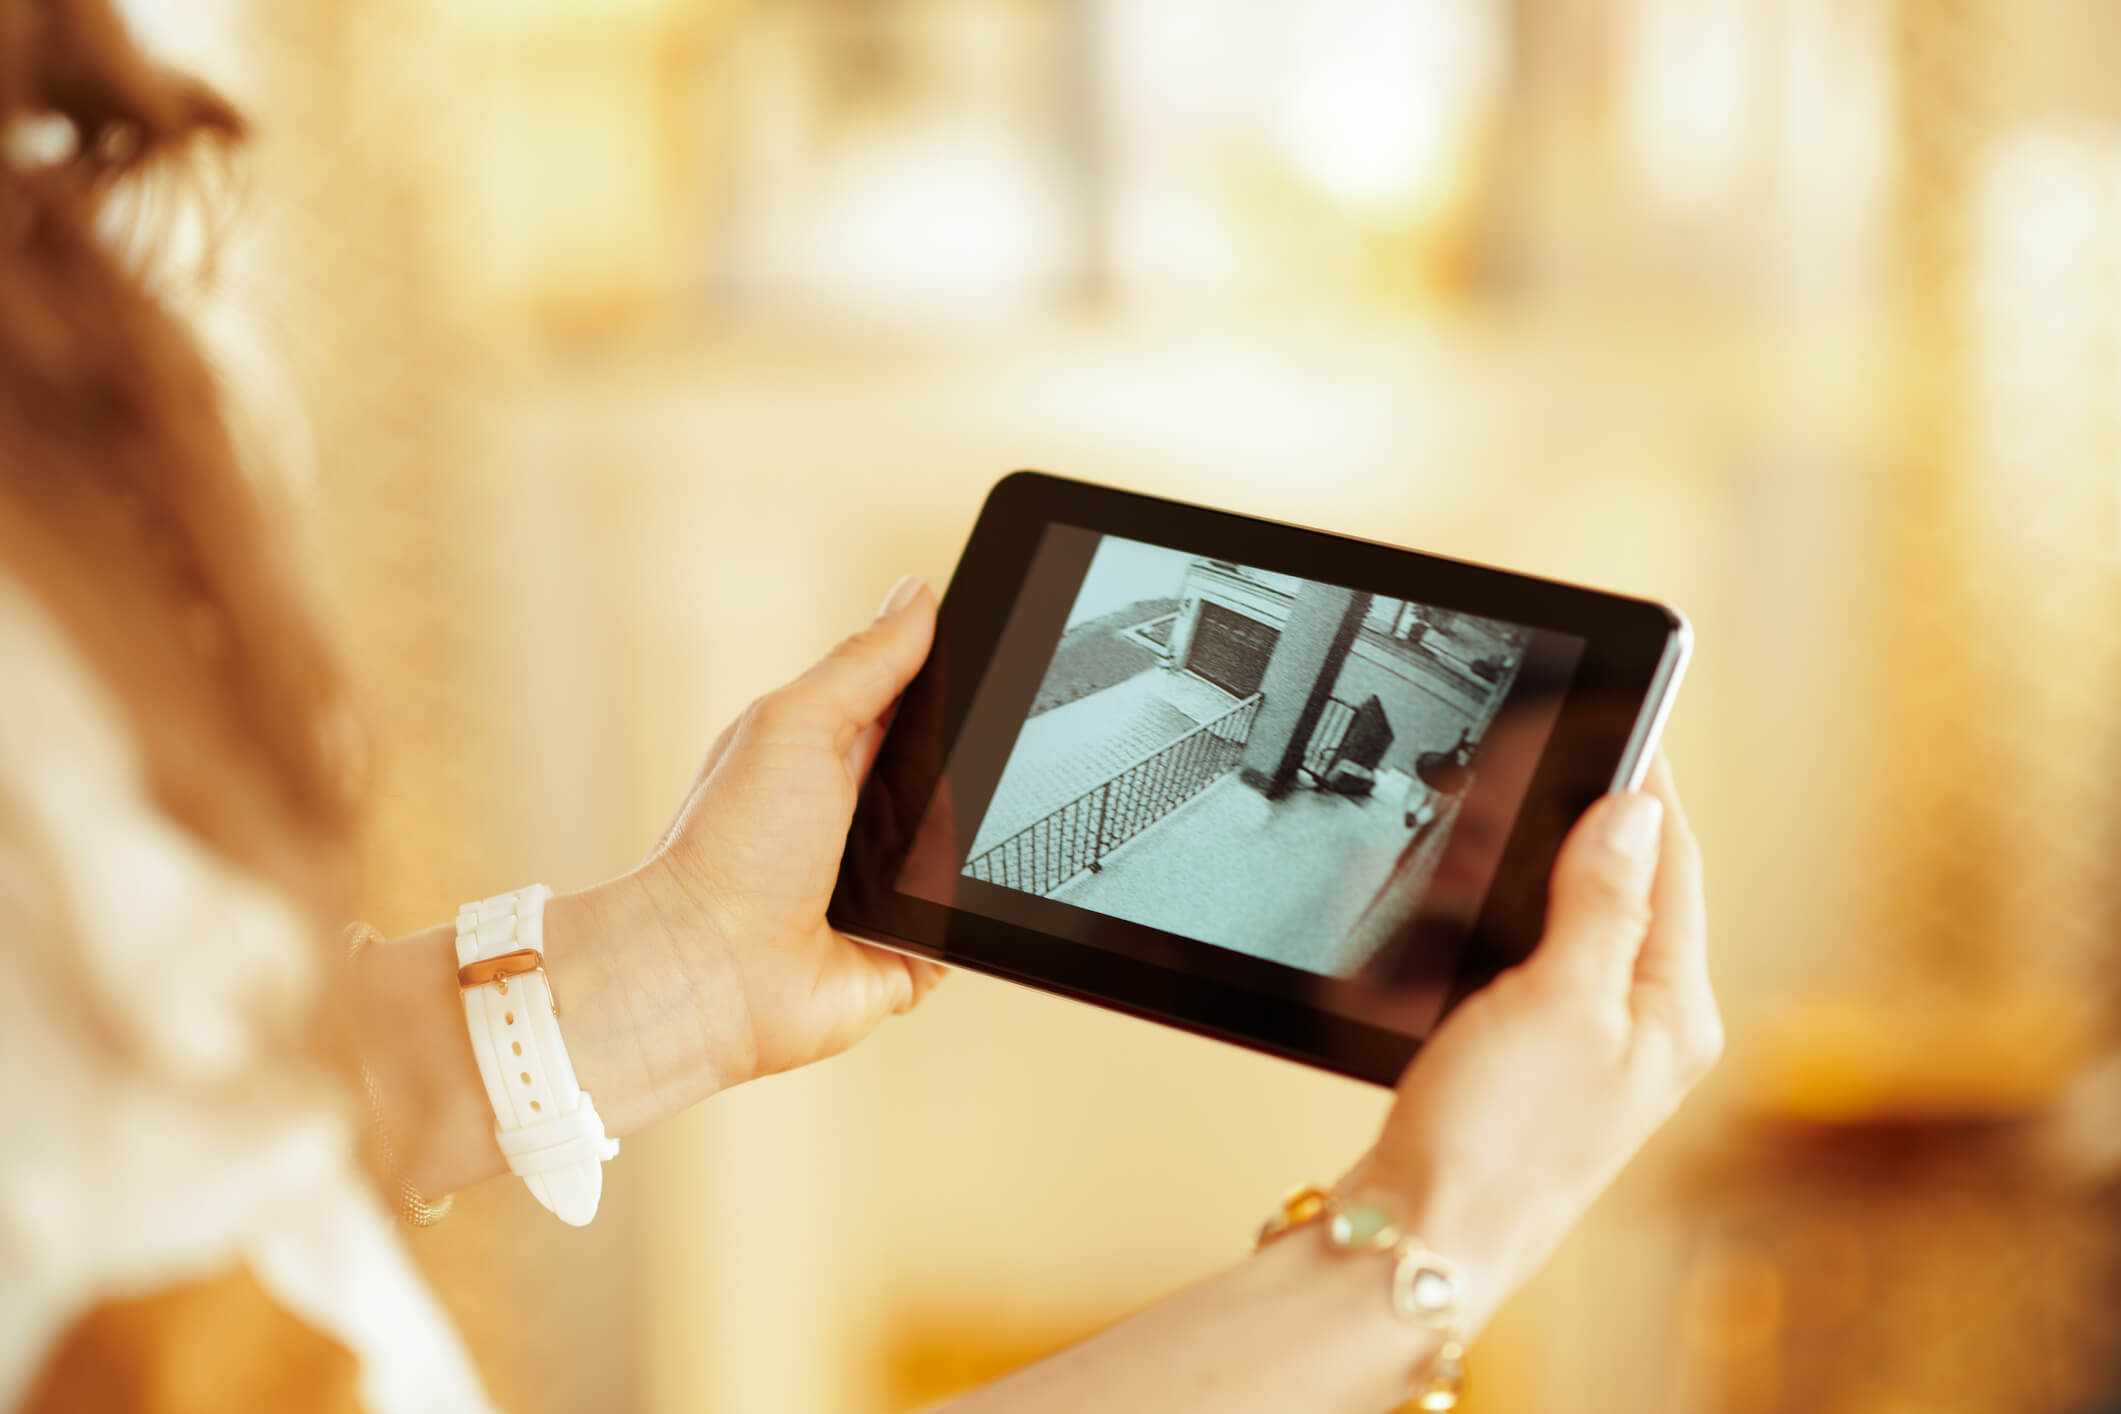 Person holding a tablet displaying a security camera feed